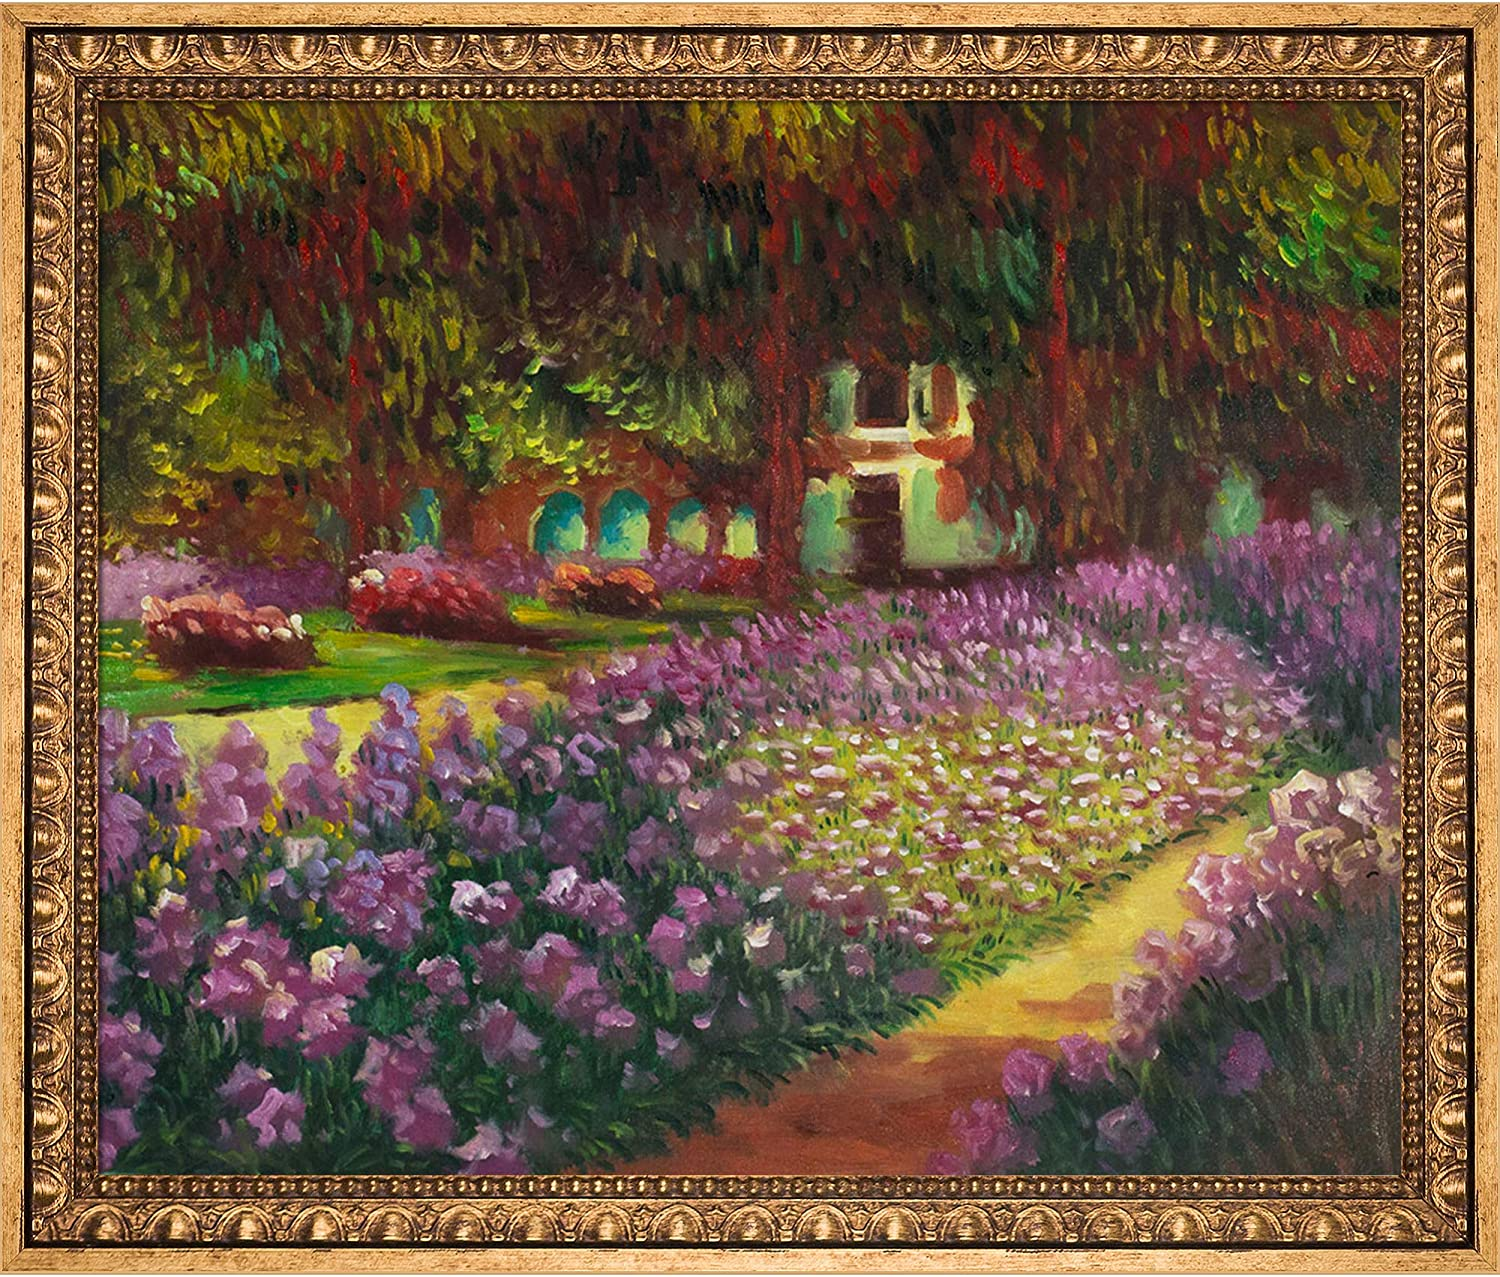 "La Pastiche OverstockArt Artist's Garden at Giverny by Claude Monet with Versailles Gold Frame Hand Painted Oil Reproduction, 27.5"" x 23.5"", Multi-Color"